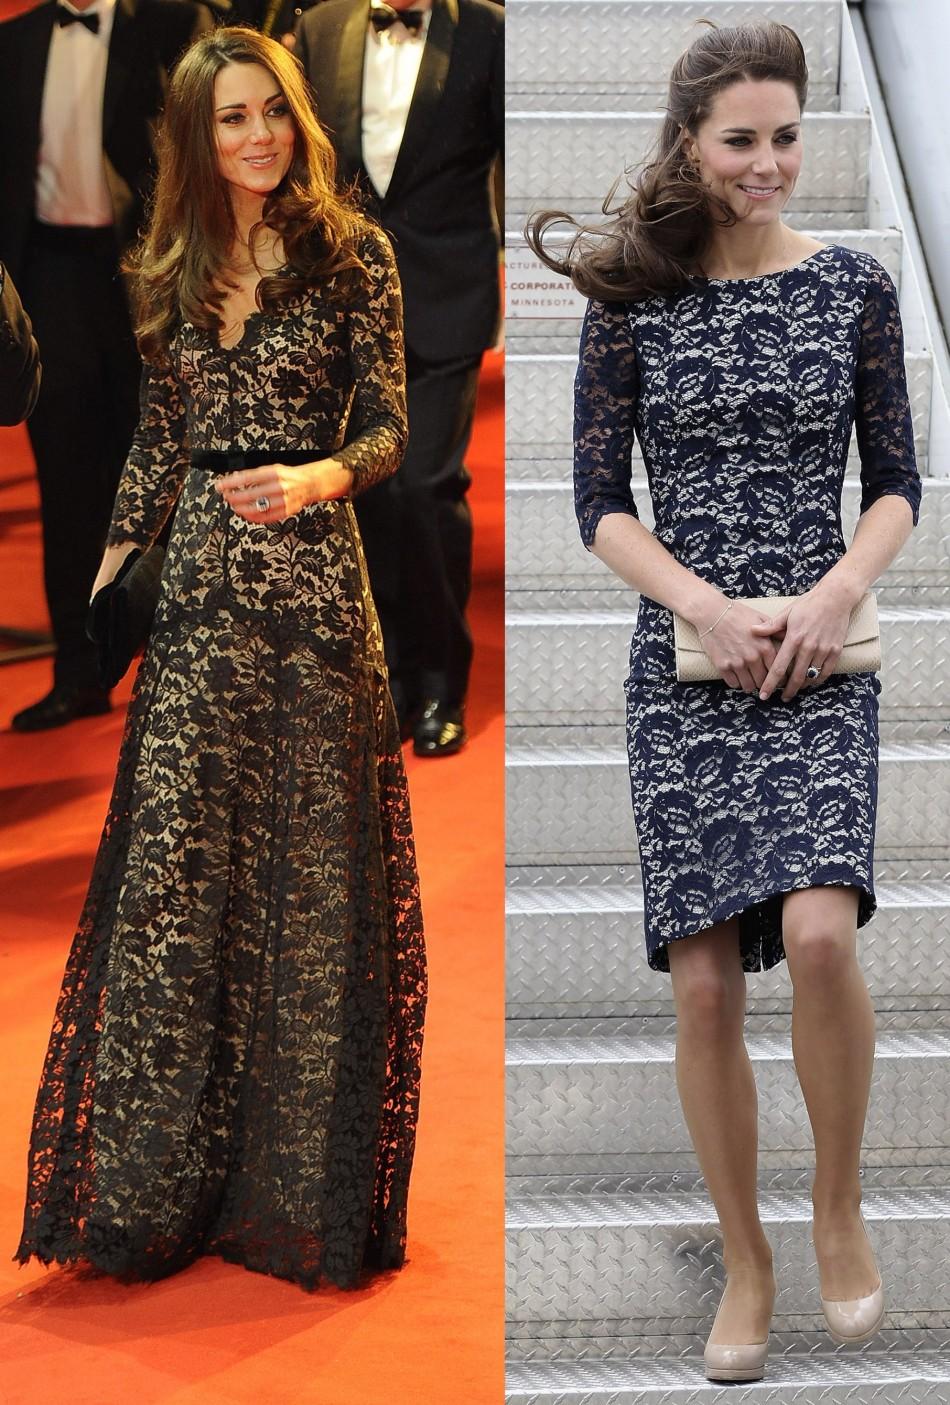 Is Kate Middleton showing a baby bump